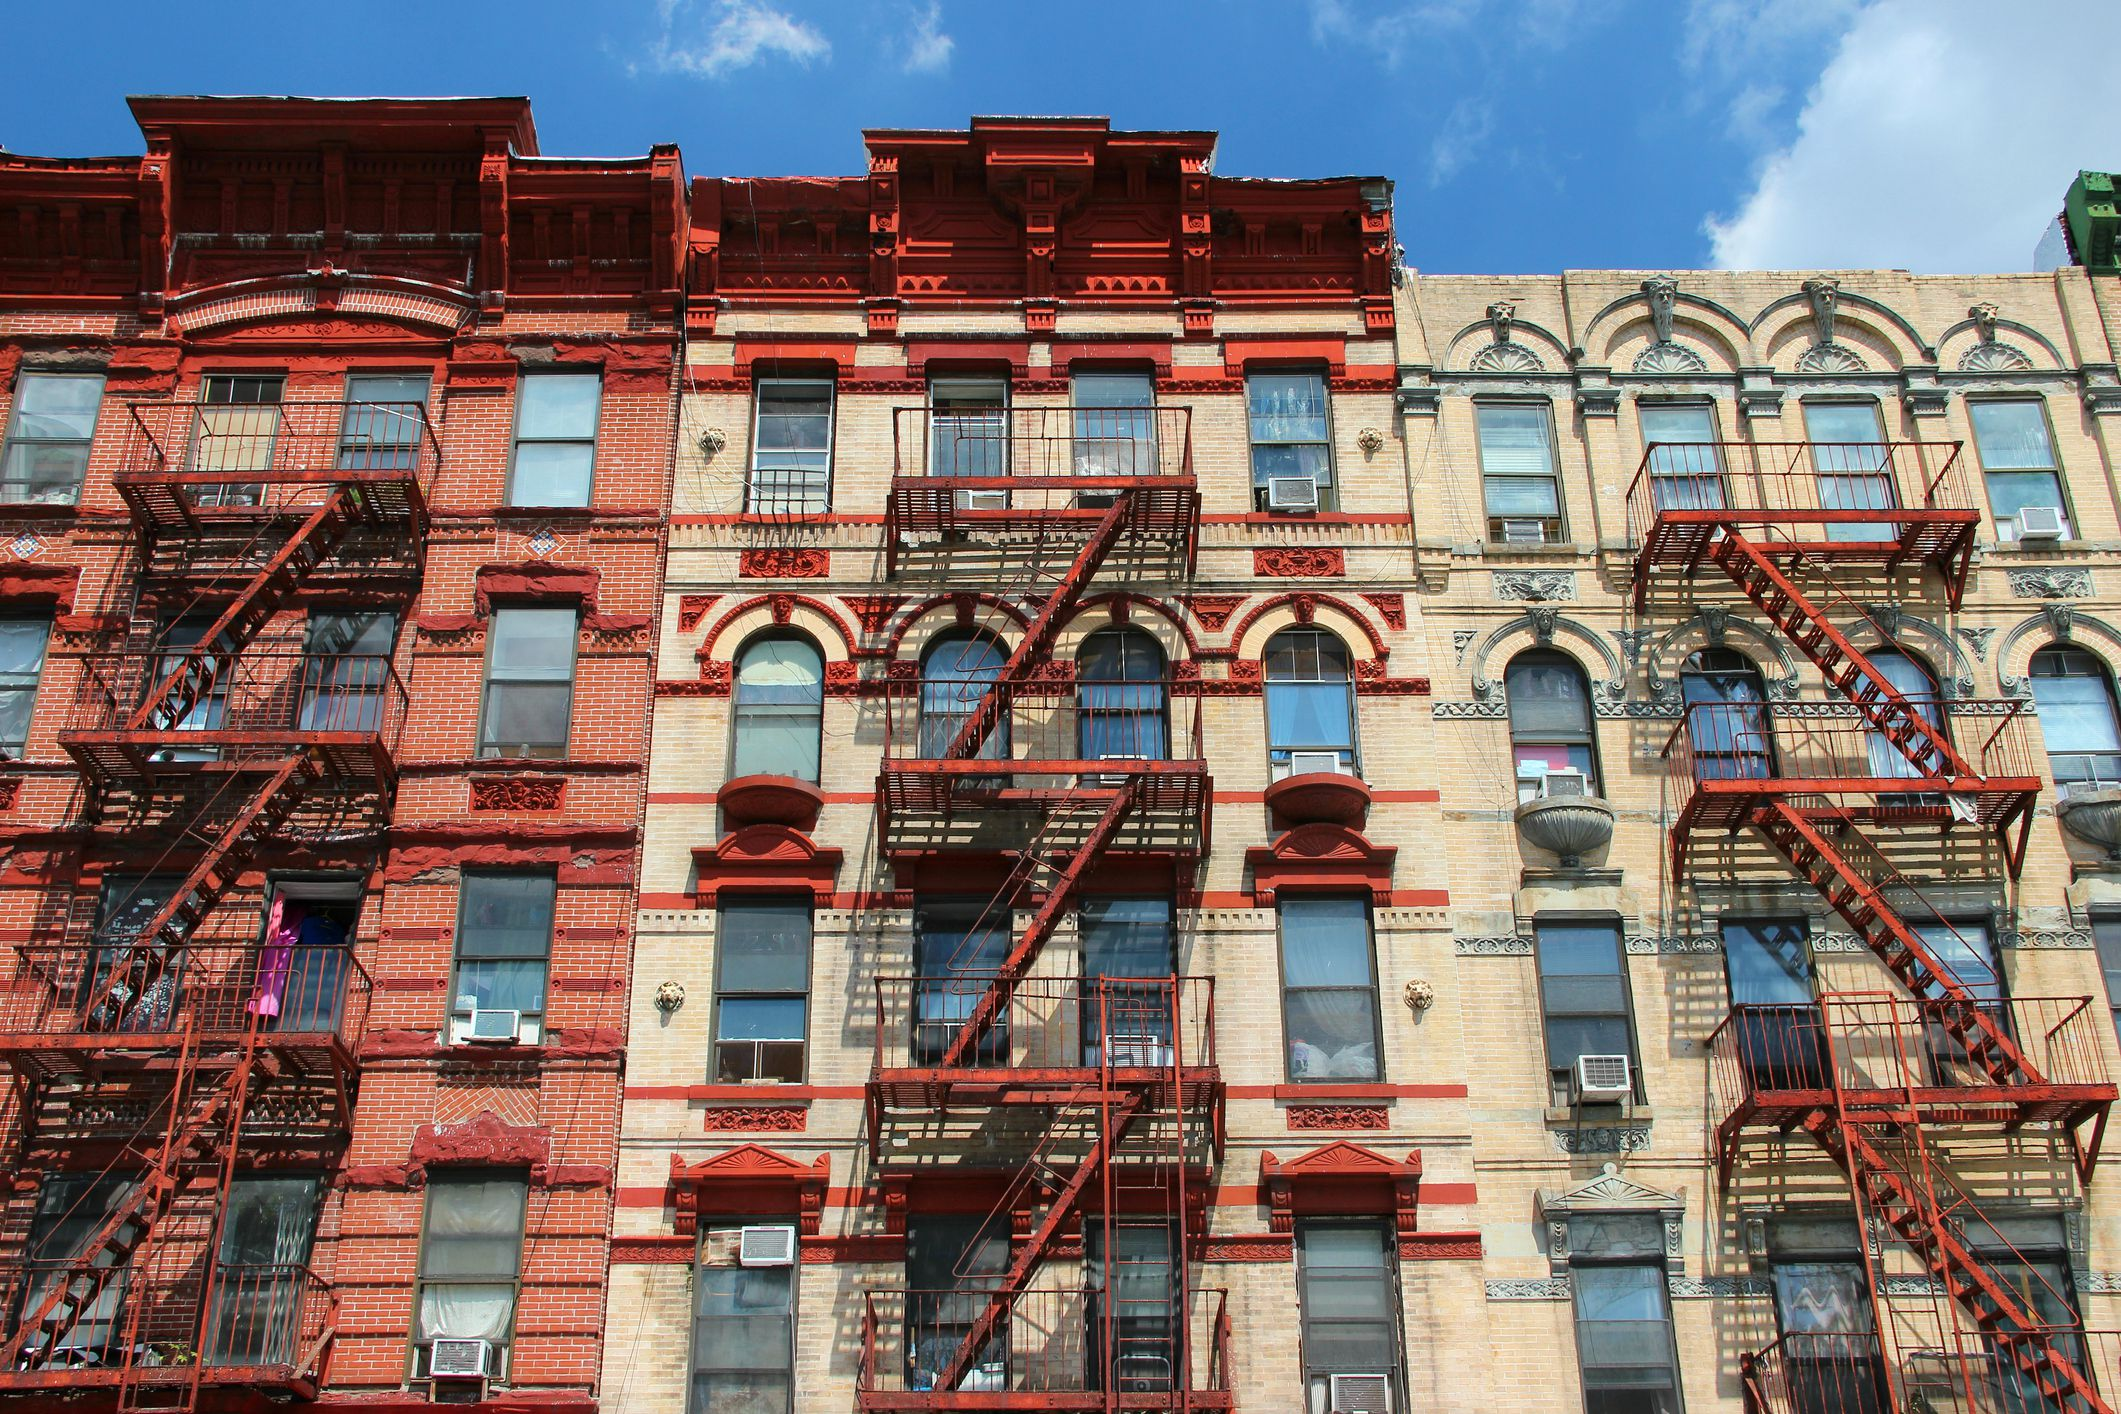 Usa New York City Manhattan Lower East Side Typical Apartment Building Facades